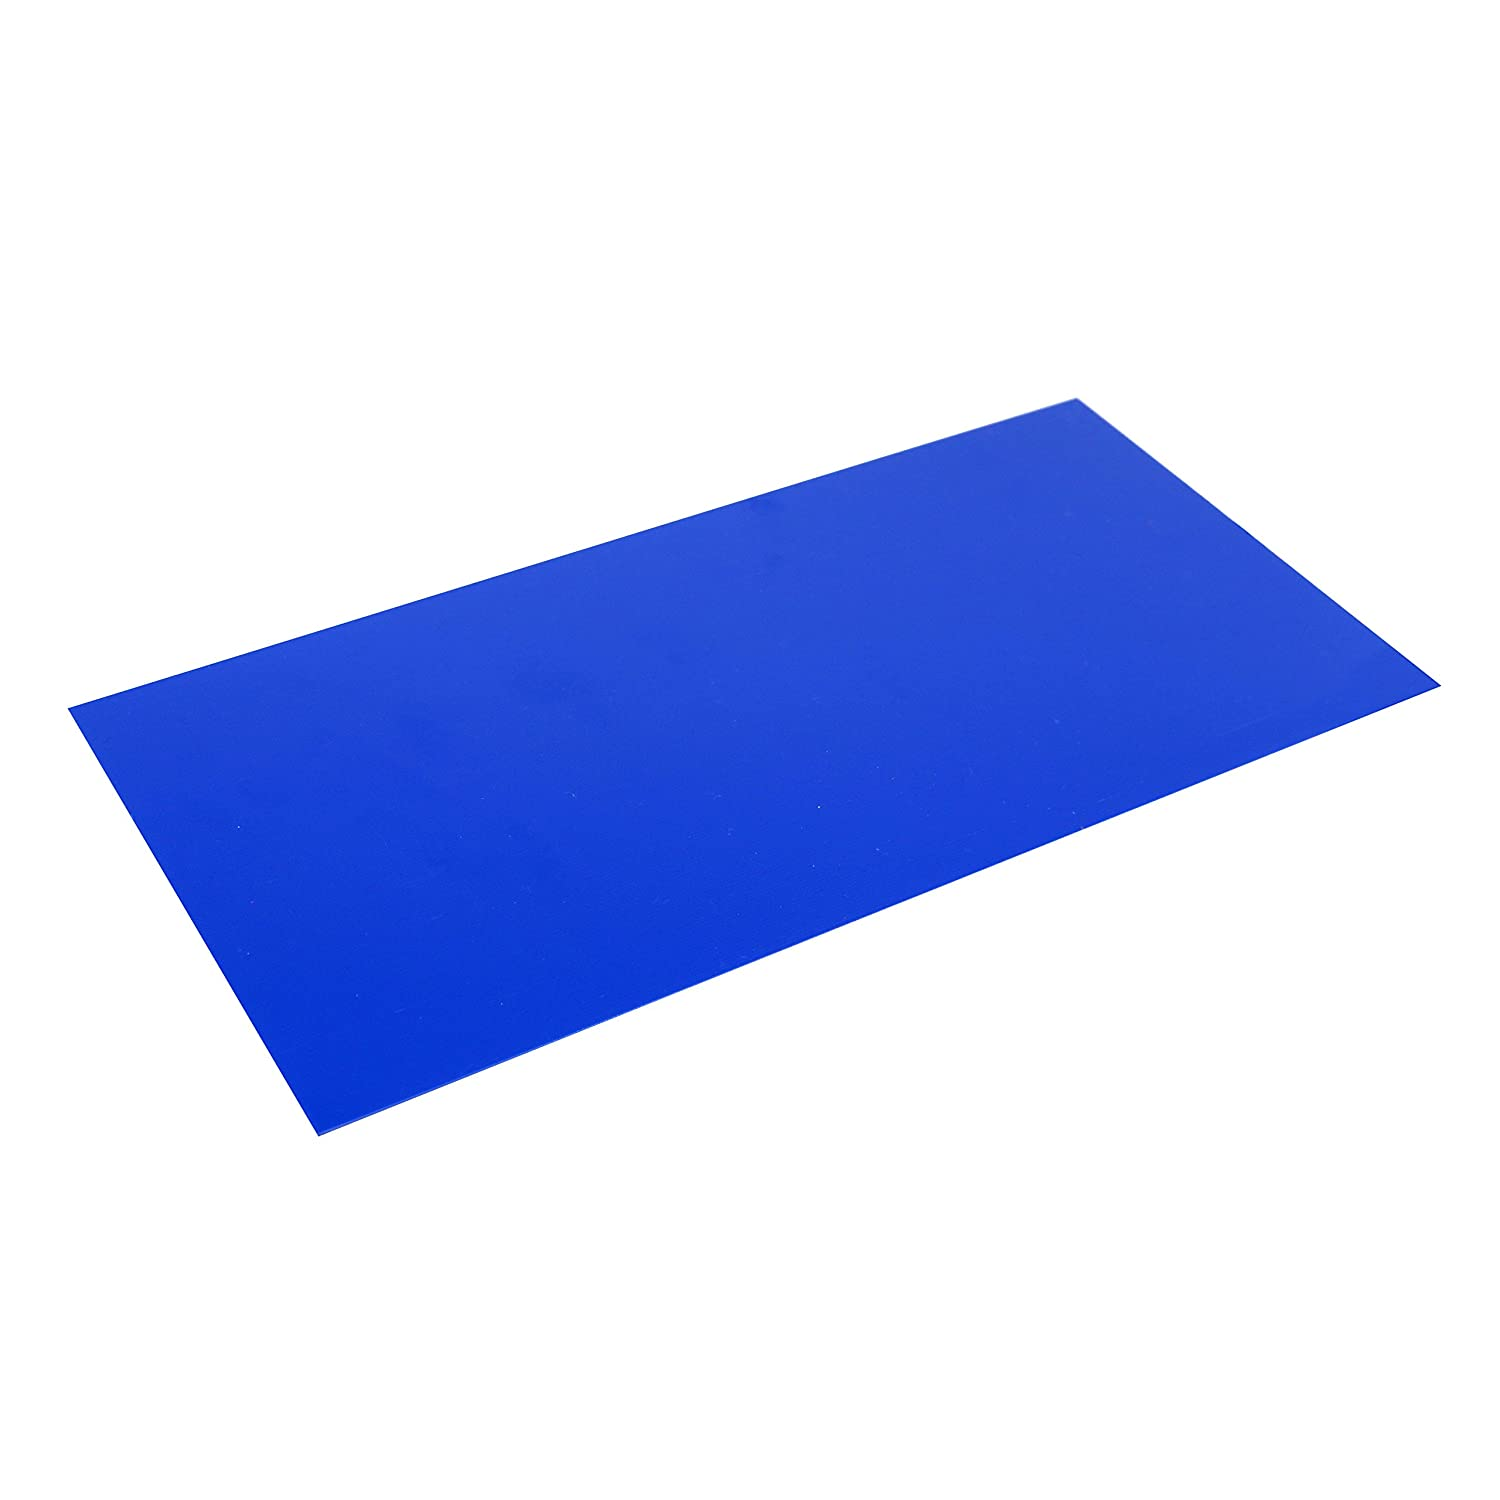 """G10 Spacer 5"""" X 10"""" X 1/32"""" Handle Material for knife making & gun making, (Blue)"""